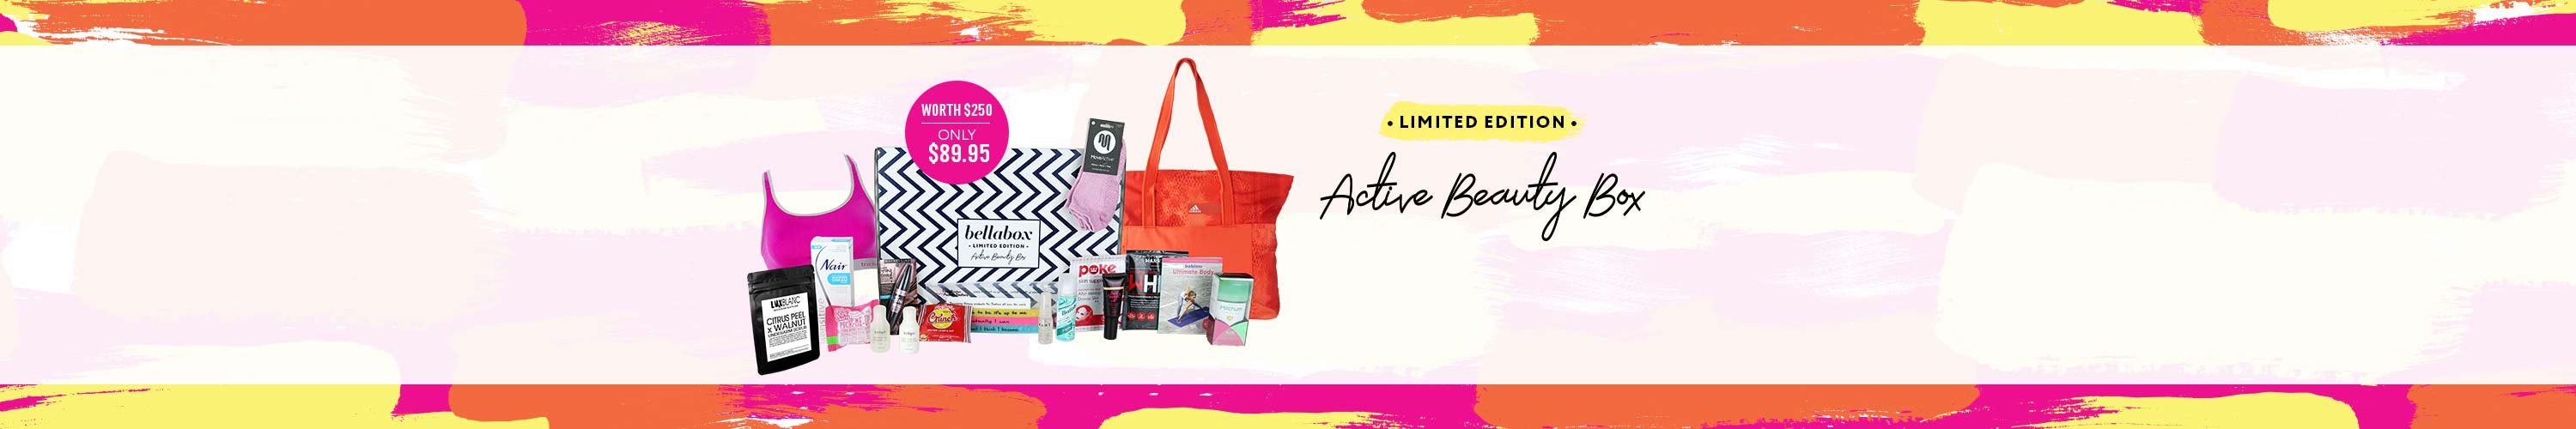 Limited Edition bellabox